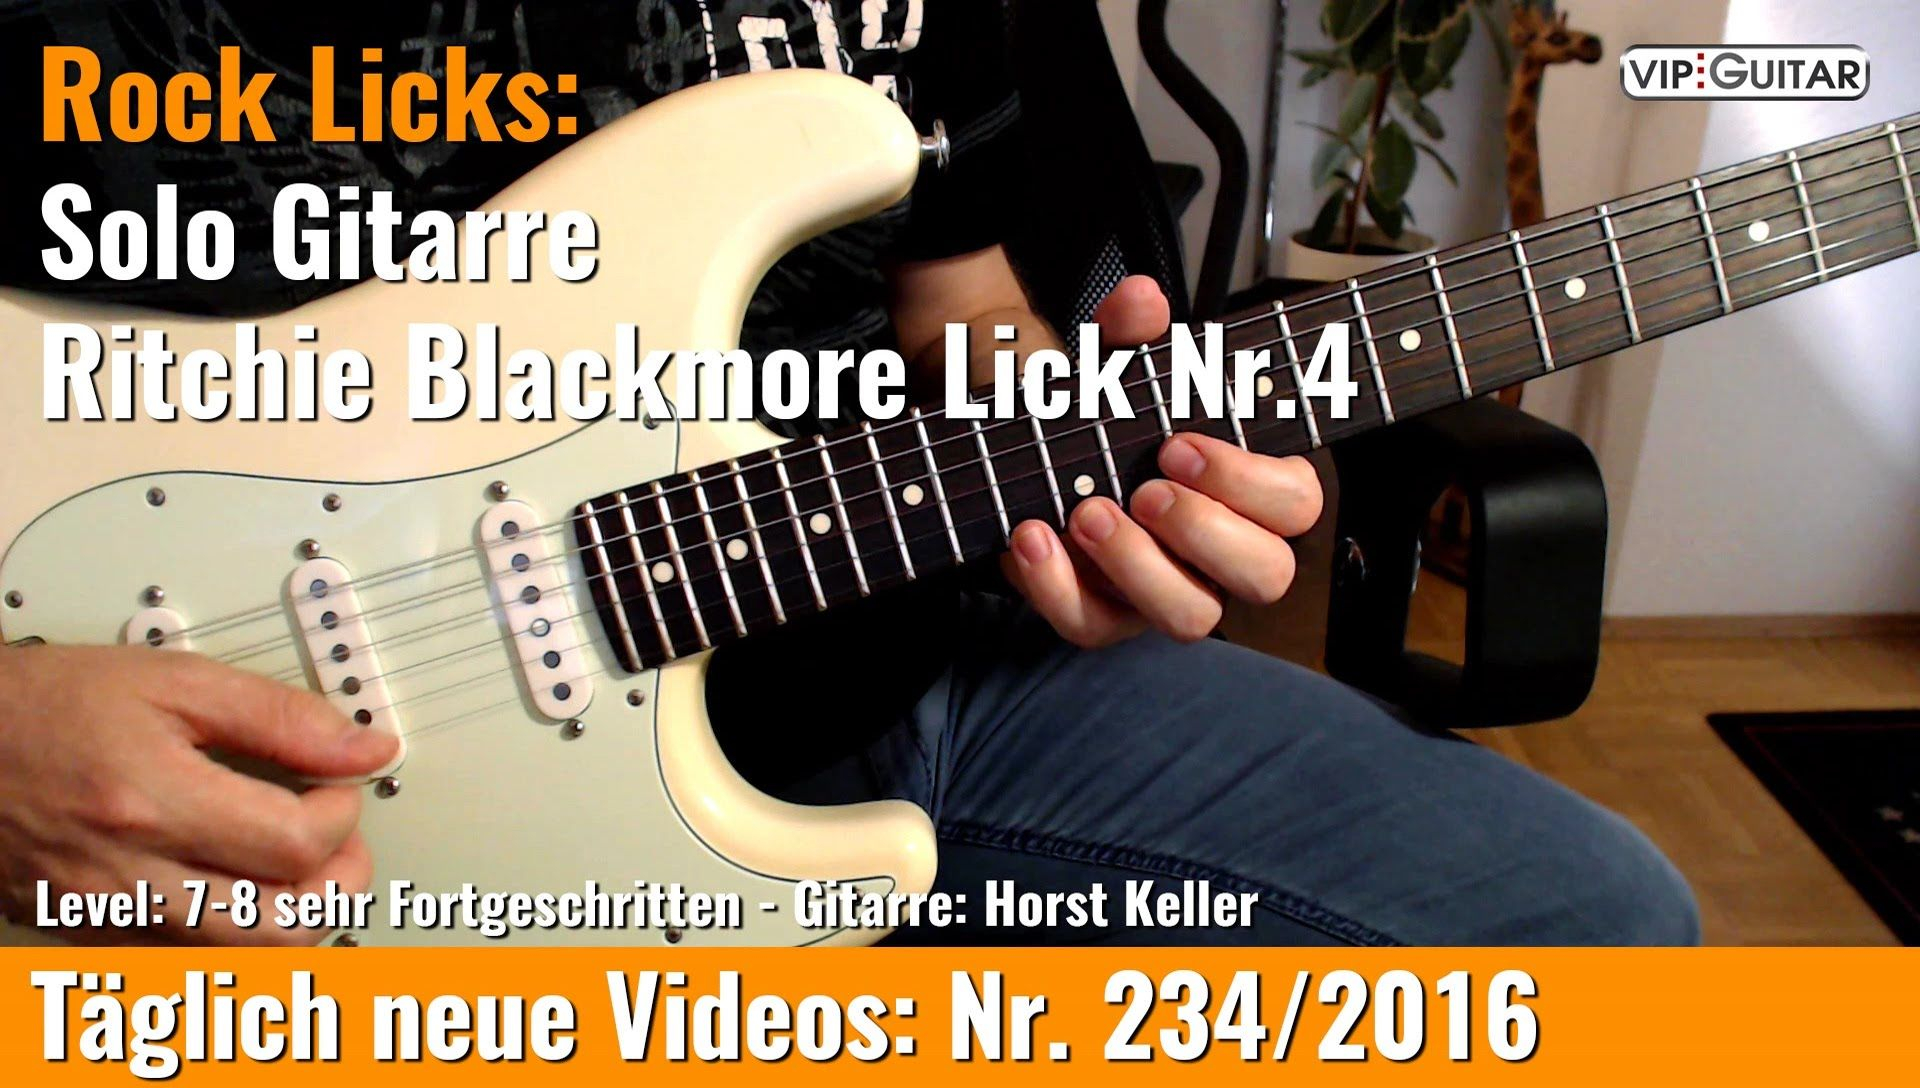 ✪ Rock Licks ▻Solo Gitarre - Ritchie Blackmore Lick Nr 4